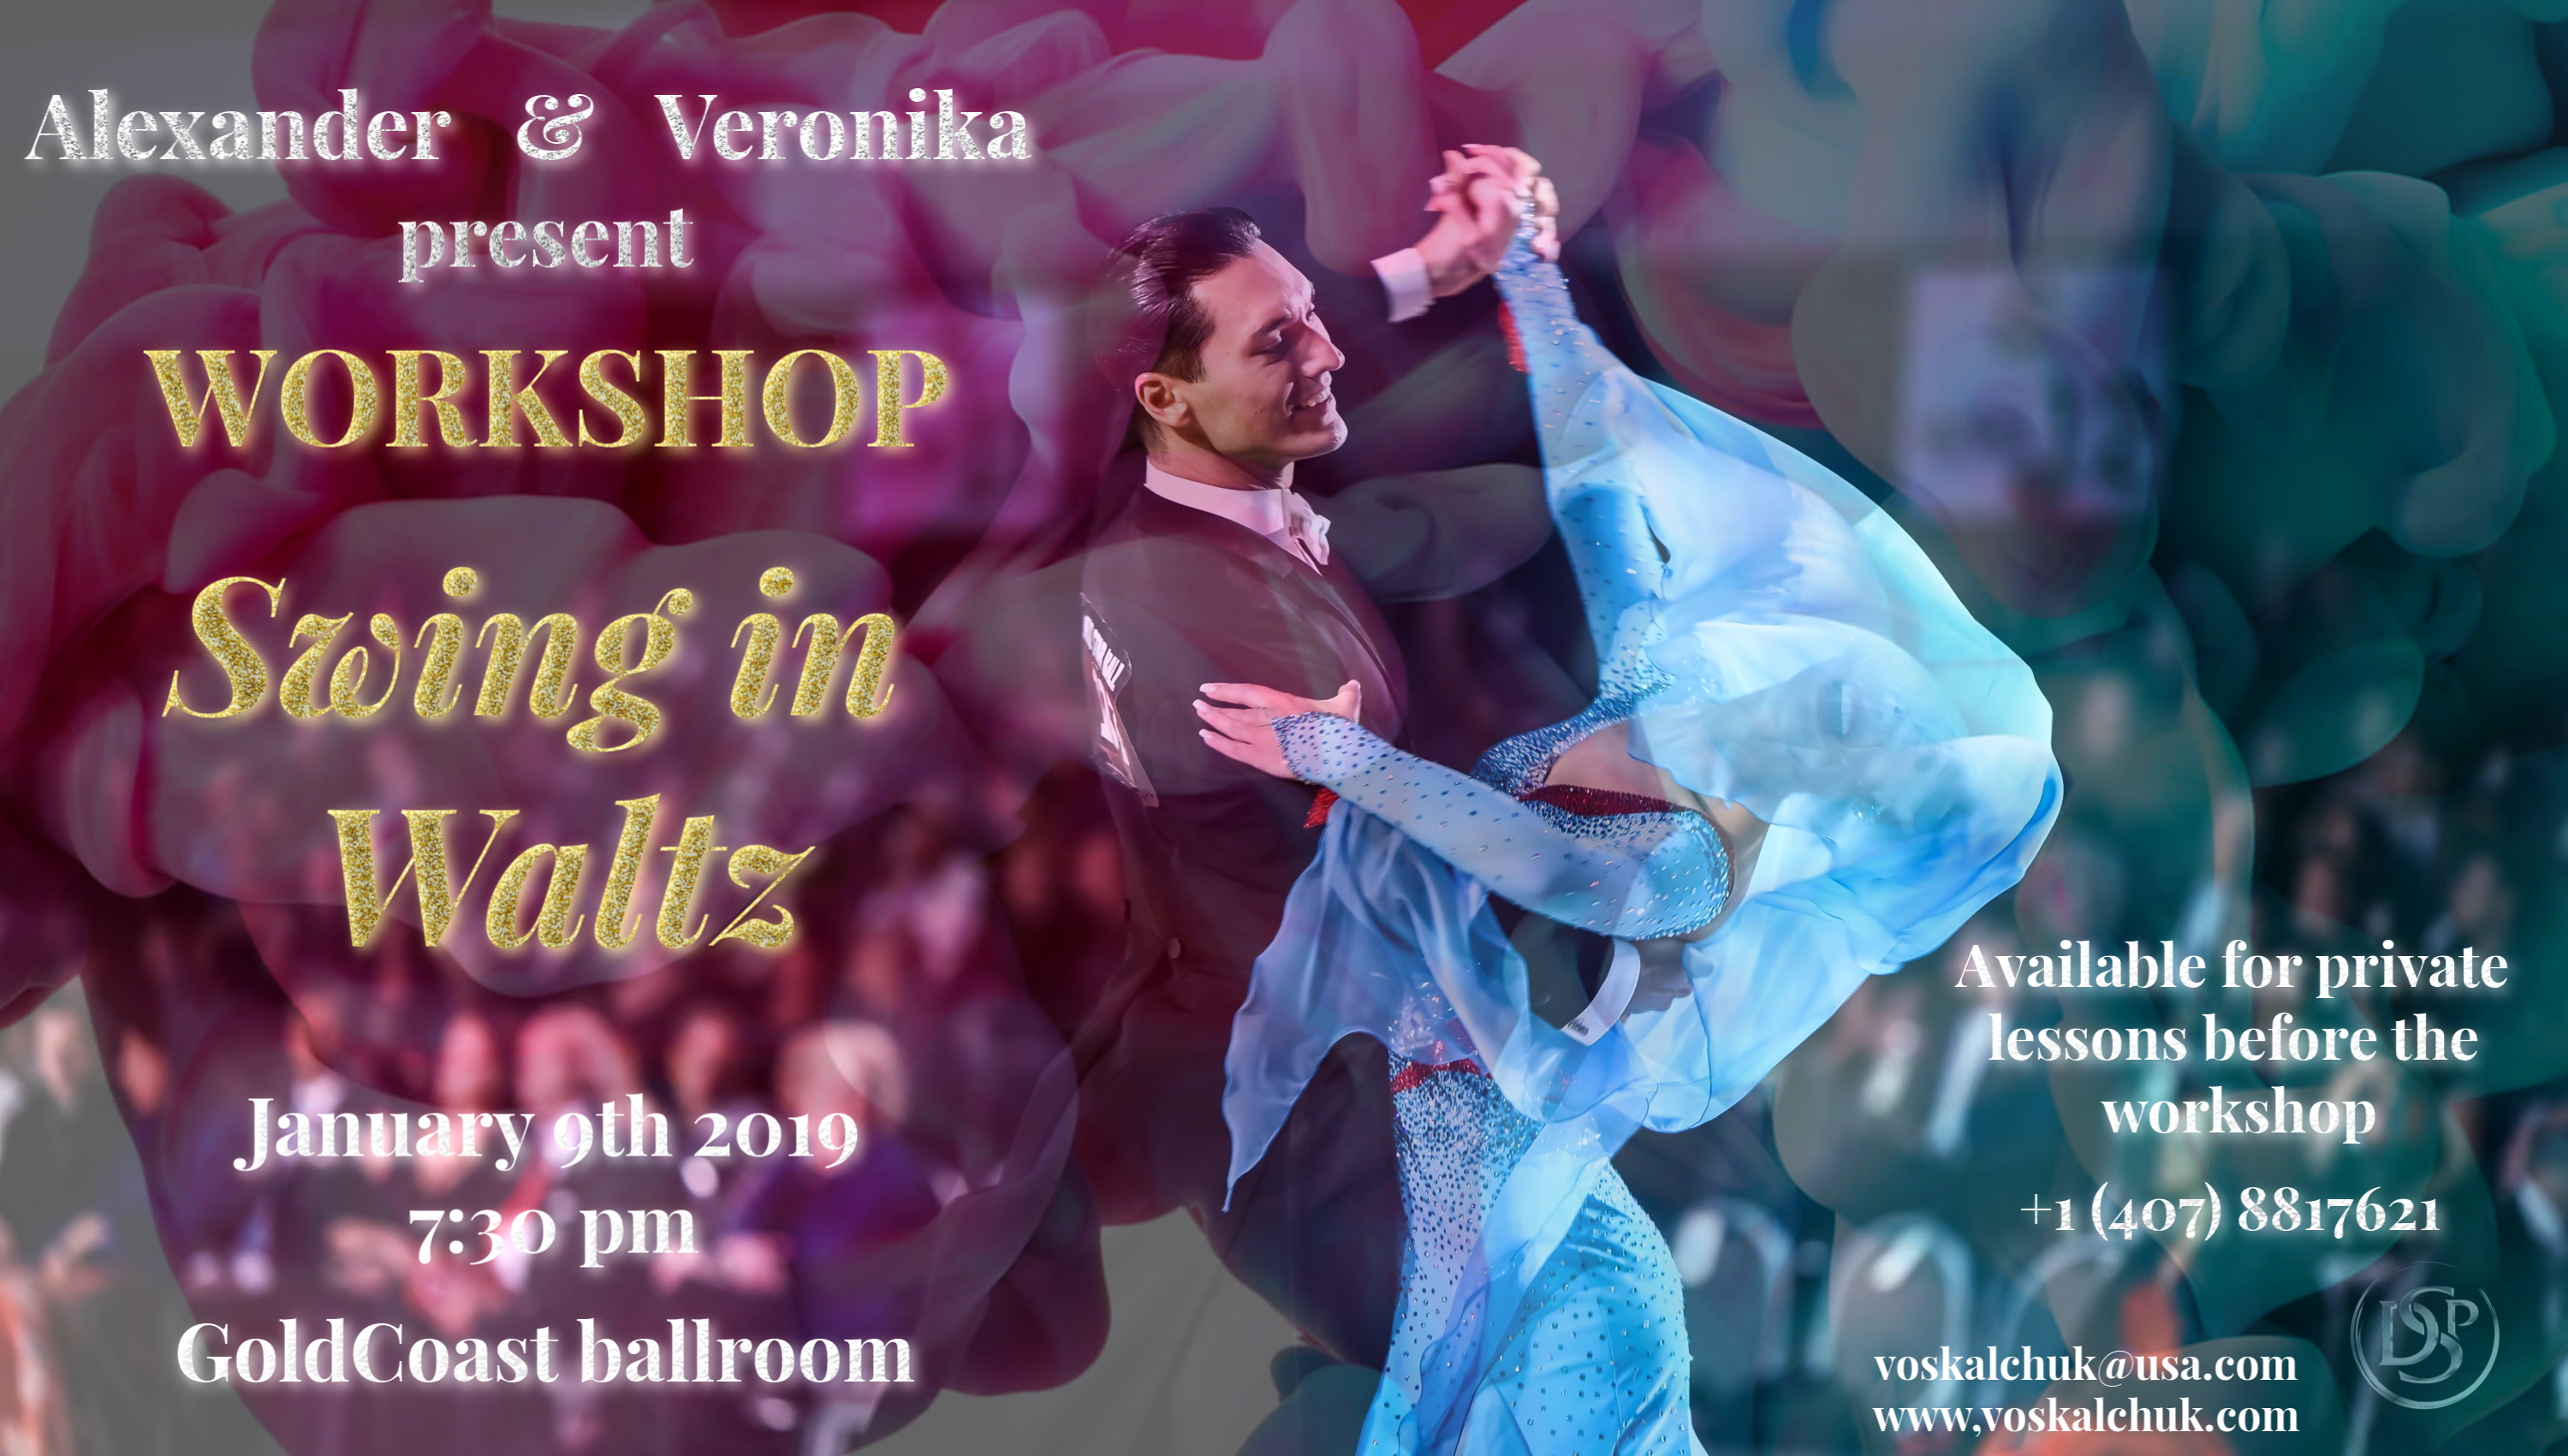 Swing in Waltz - Master Workshop with Alexander & Veronika Voskalchuk! - 7:30 pm Wednesday, January 9, 2019